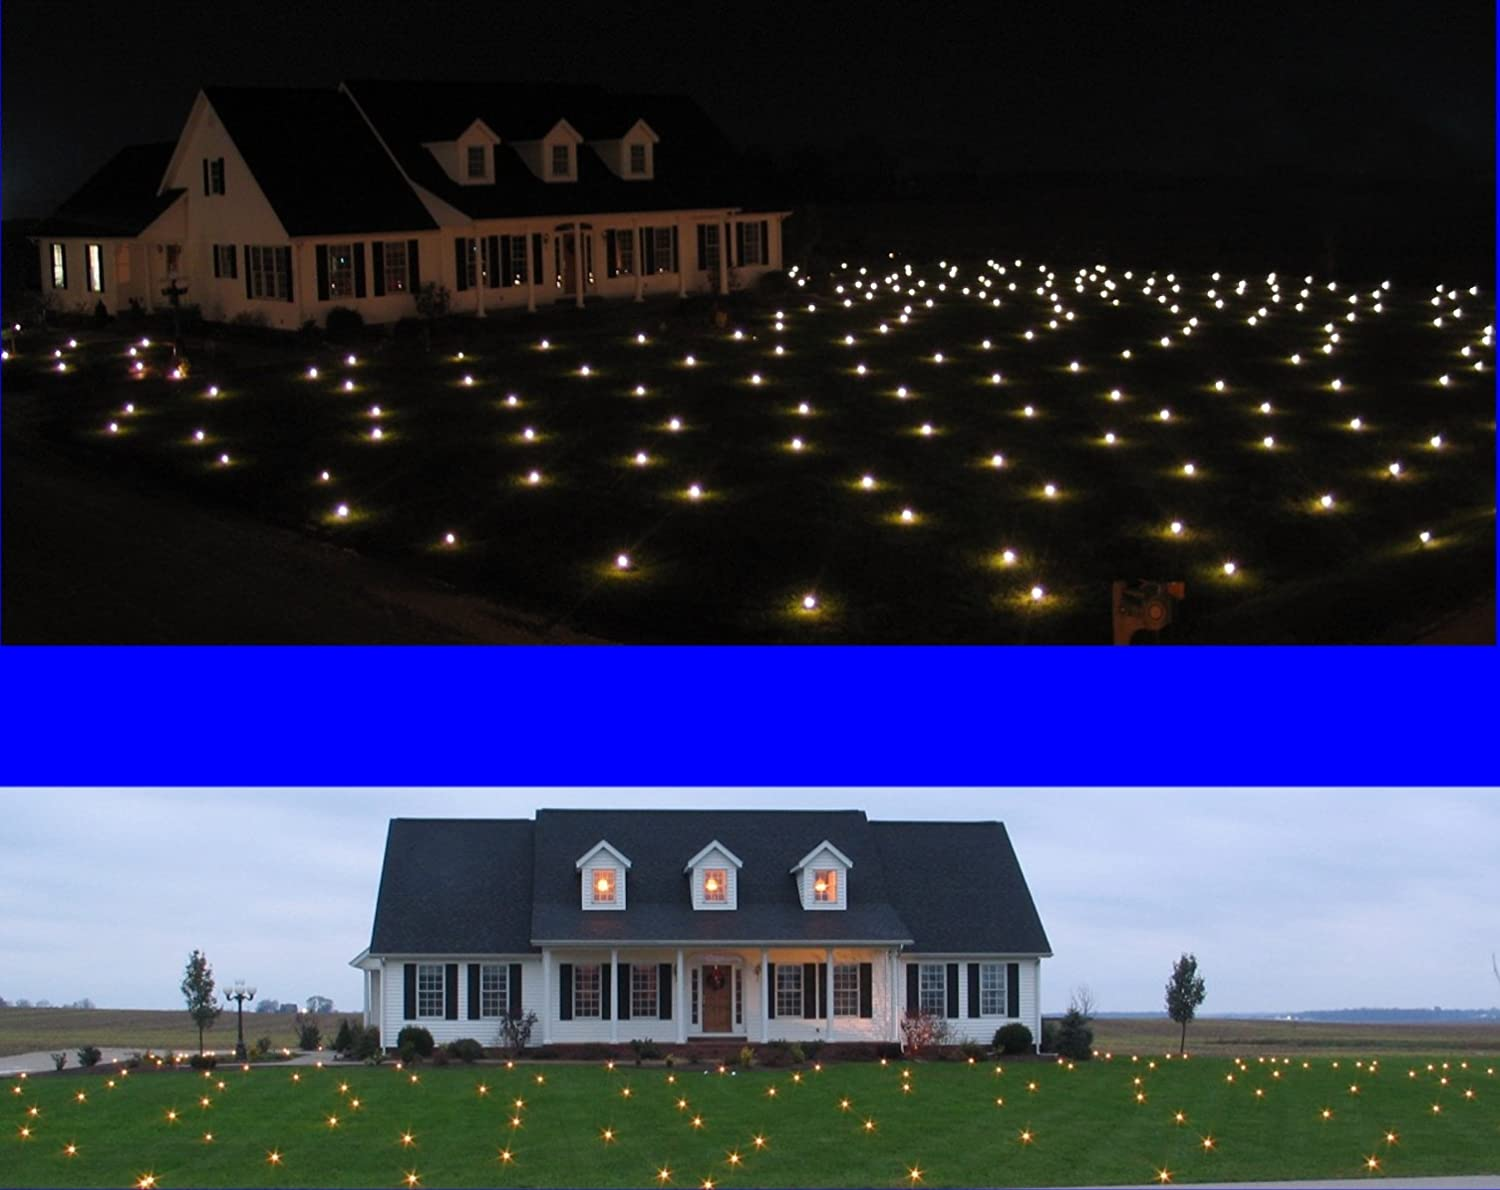 Outdoor Led Christmas Lawn Decorations  from images-na.ssl-images-amazon.com